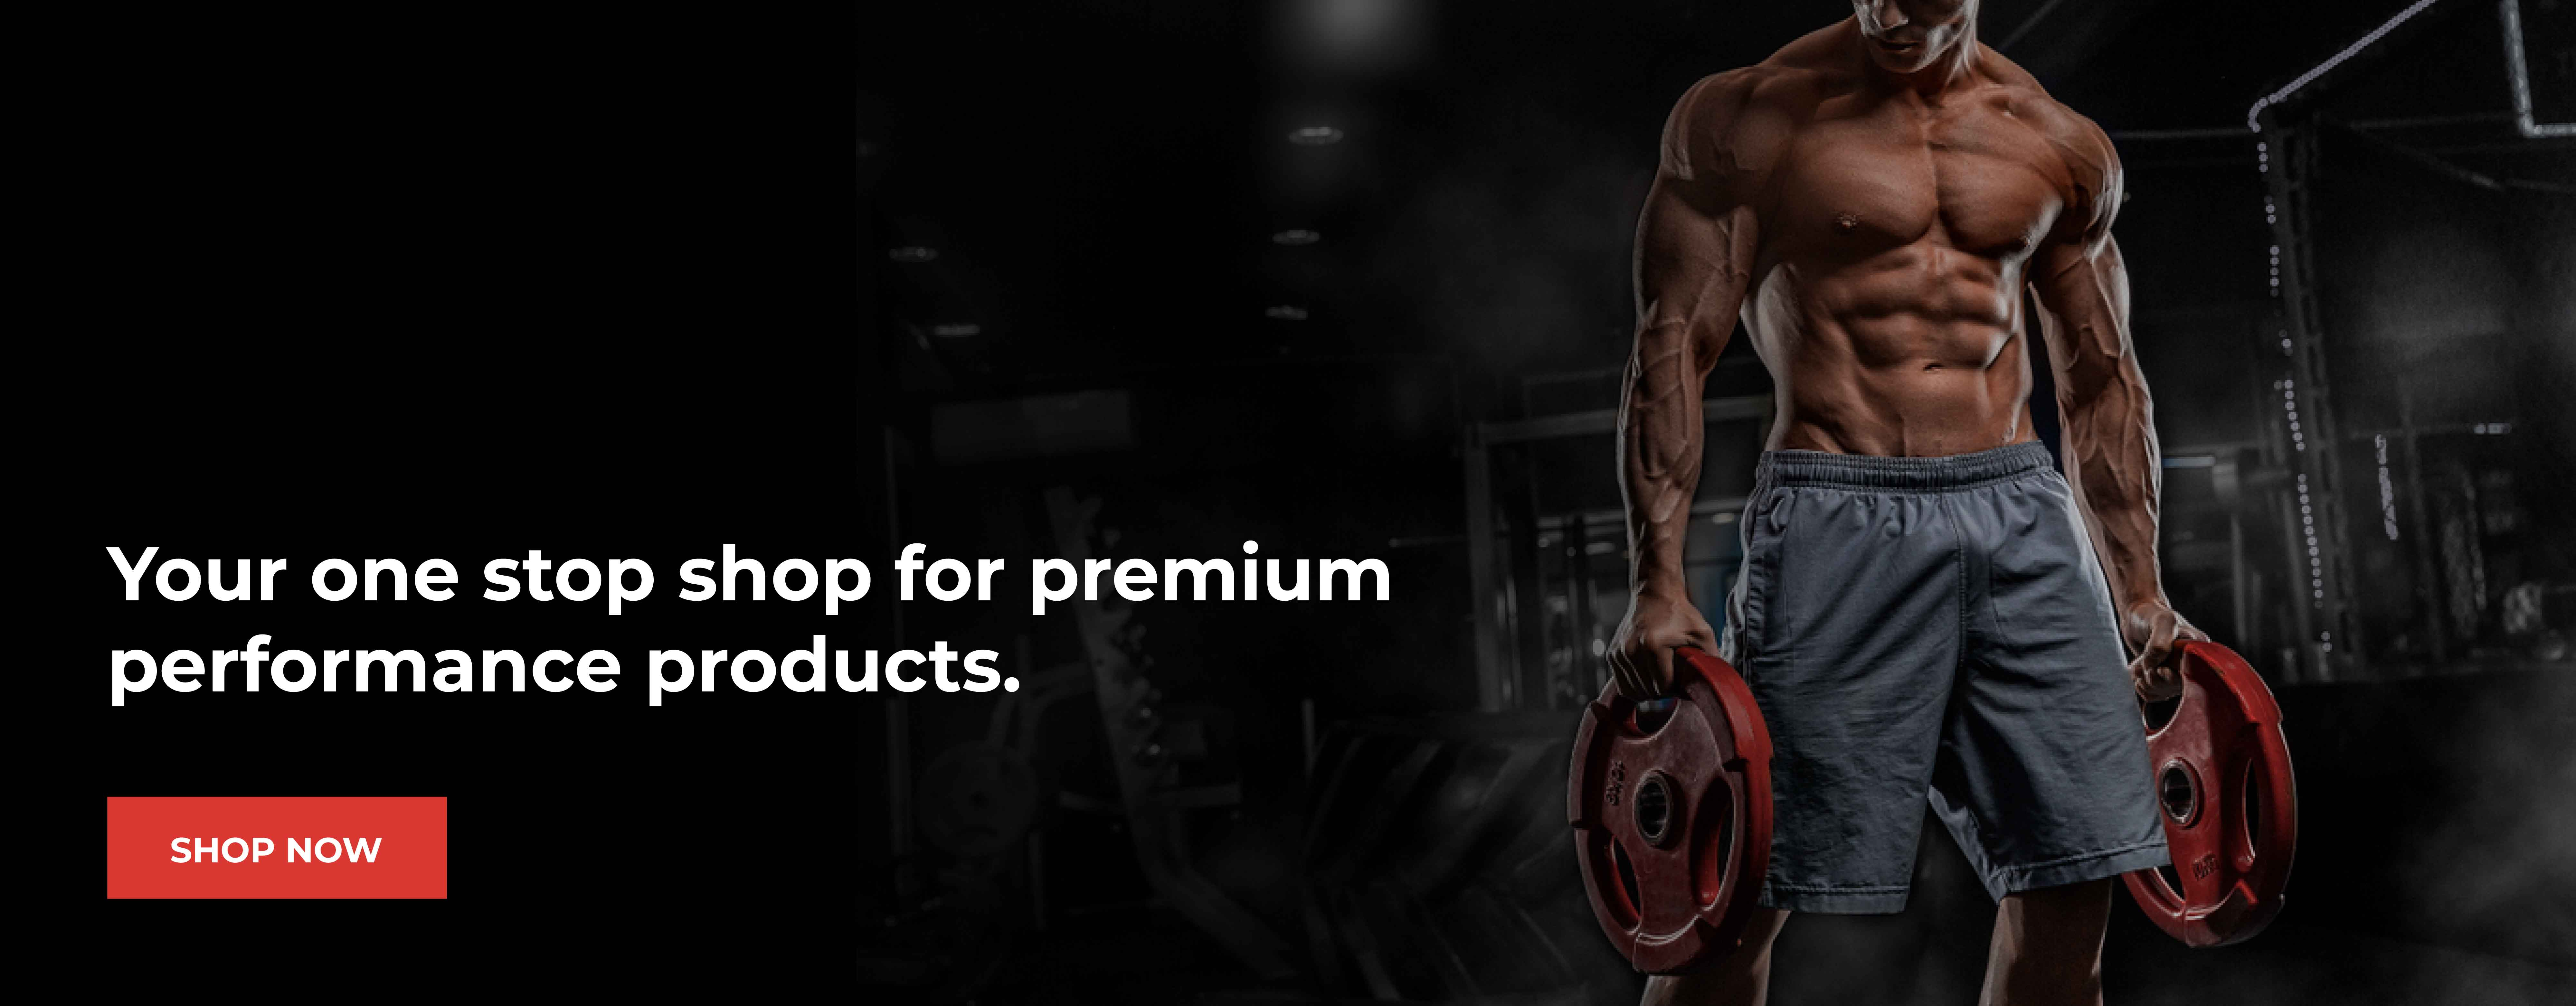 Shop protein supplements